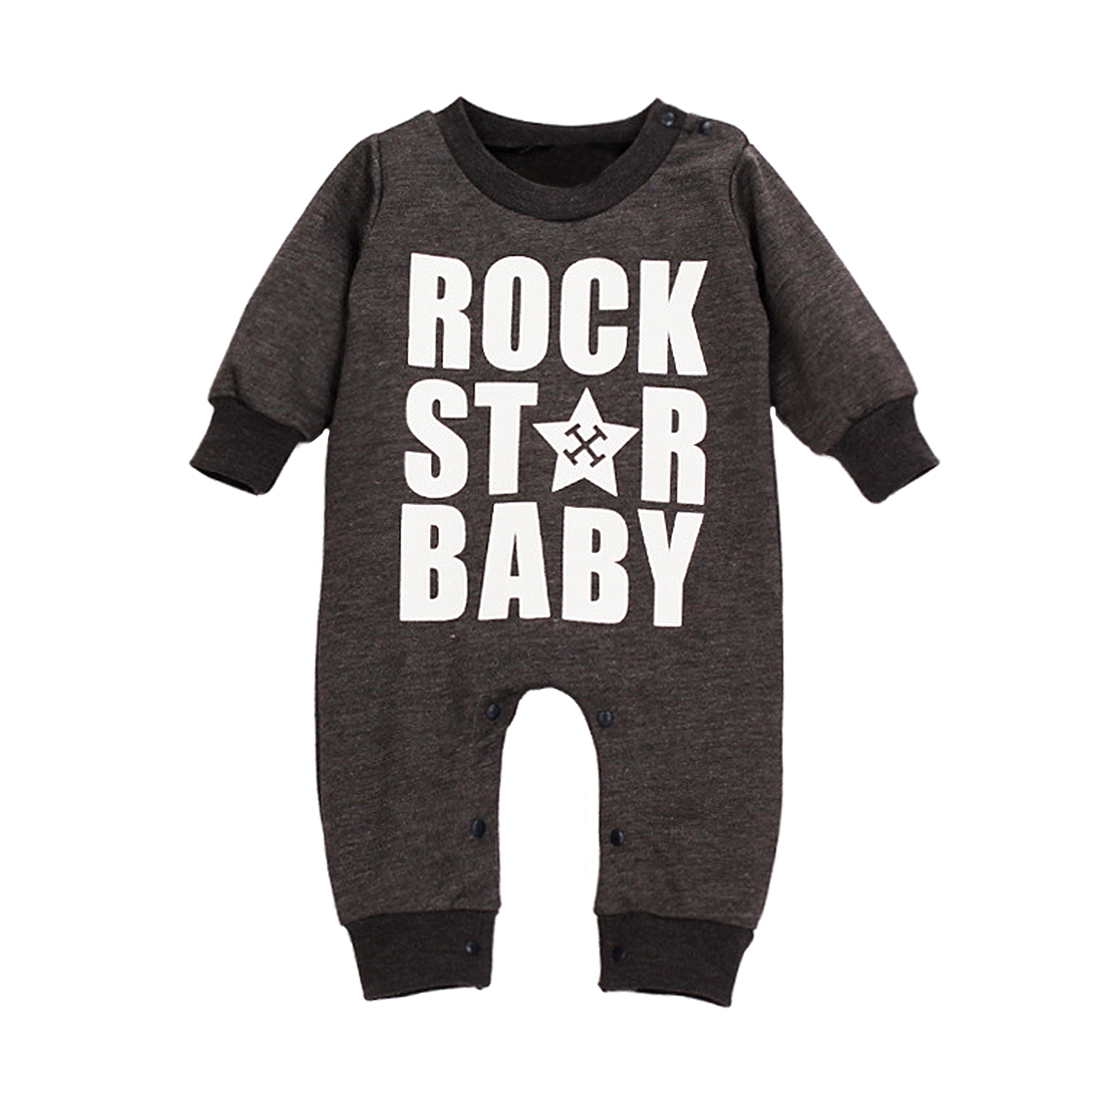 rock star baby boys girls long sleeve romper jumpers sleepsuit sn ebay. Black Bedroom Furniture Sets. Home Design Ideas